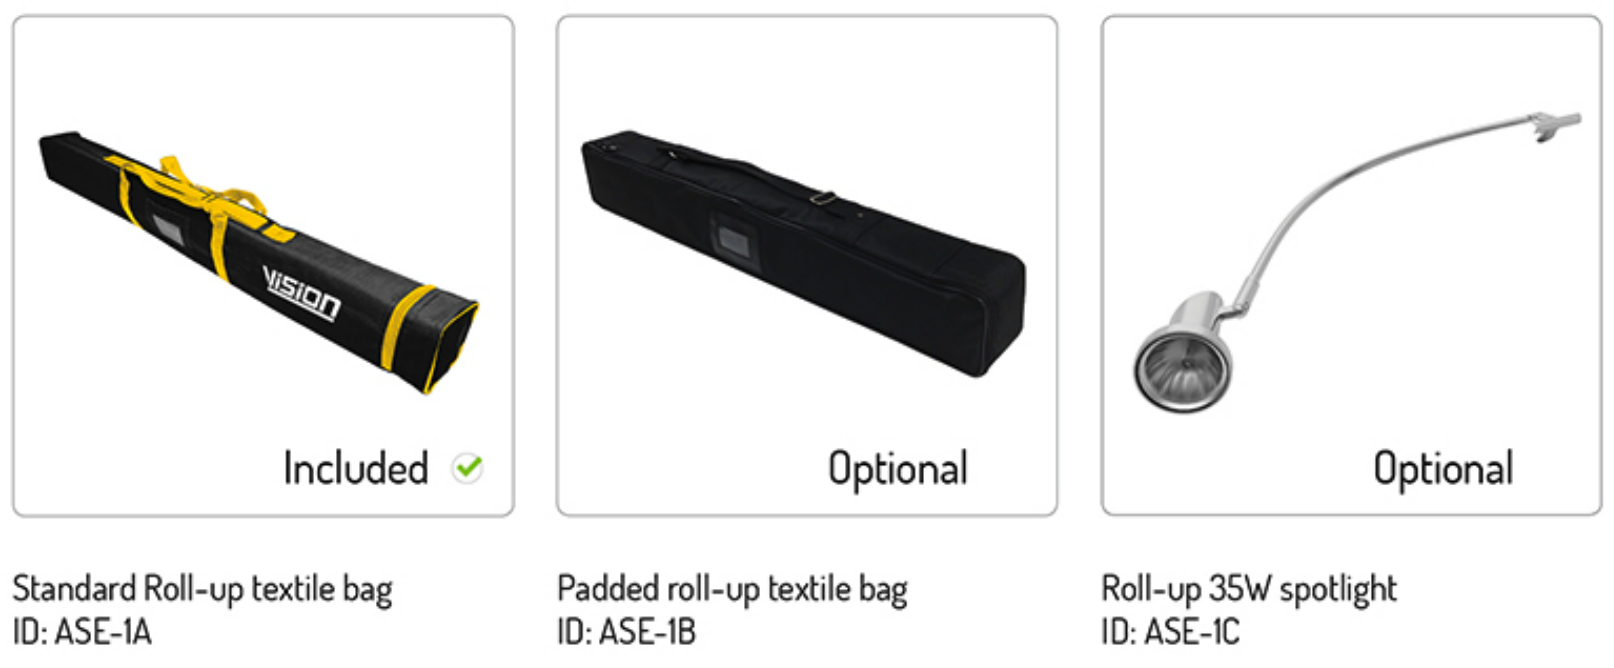 textile bag roll up